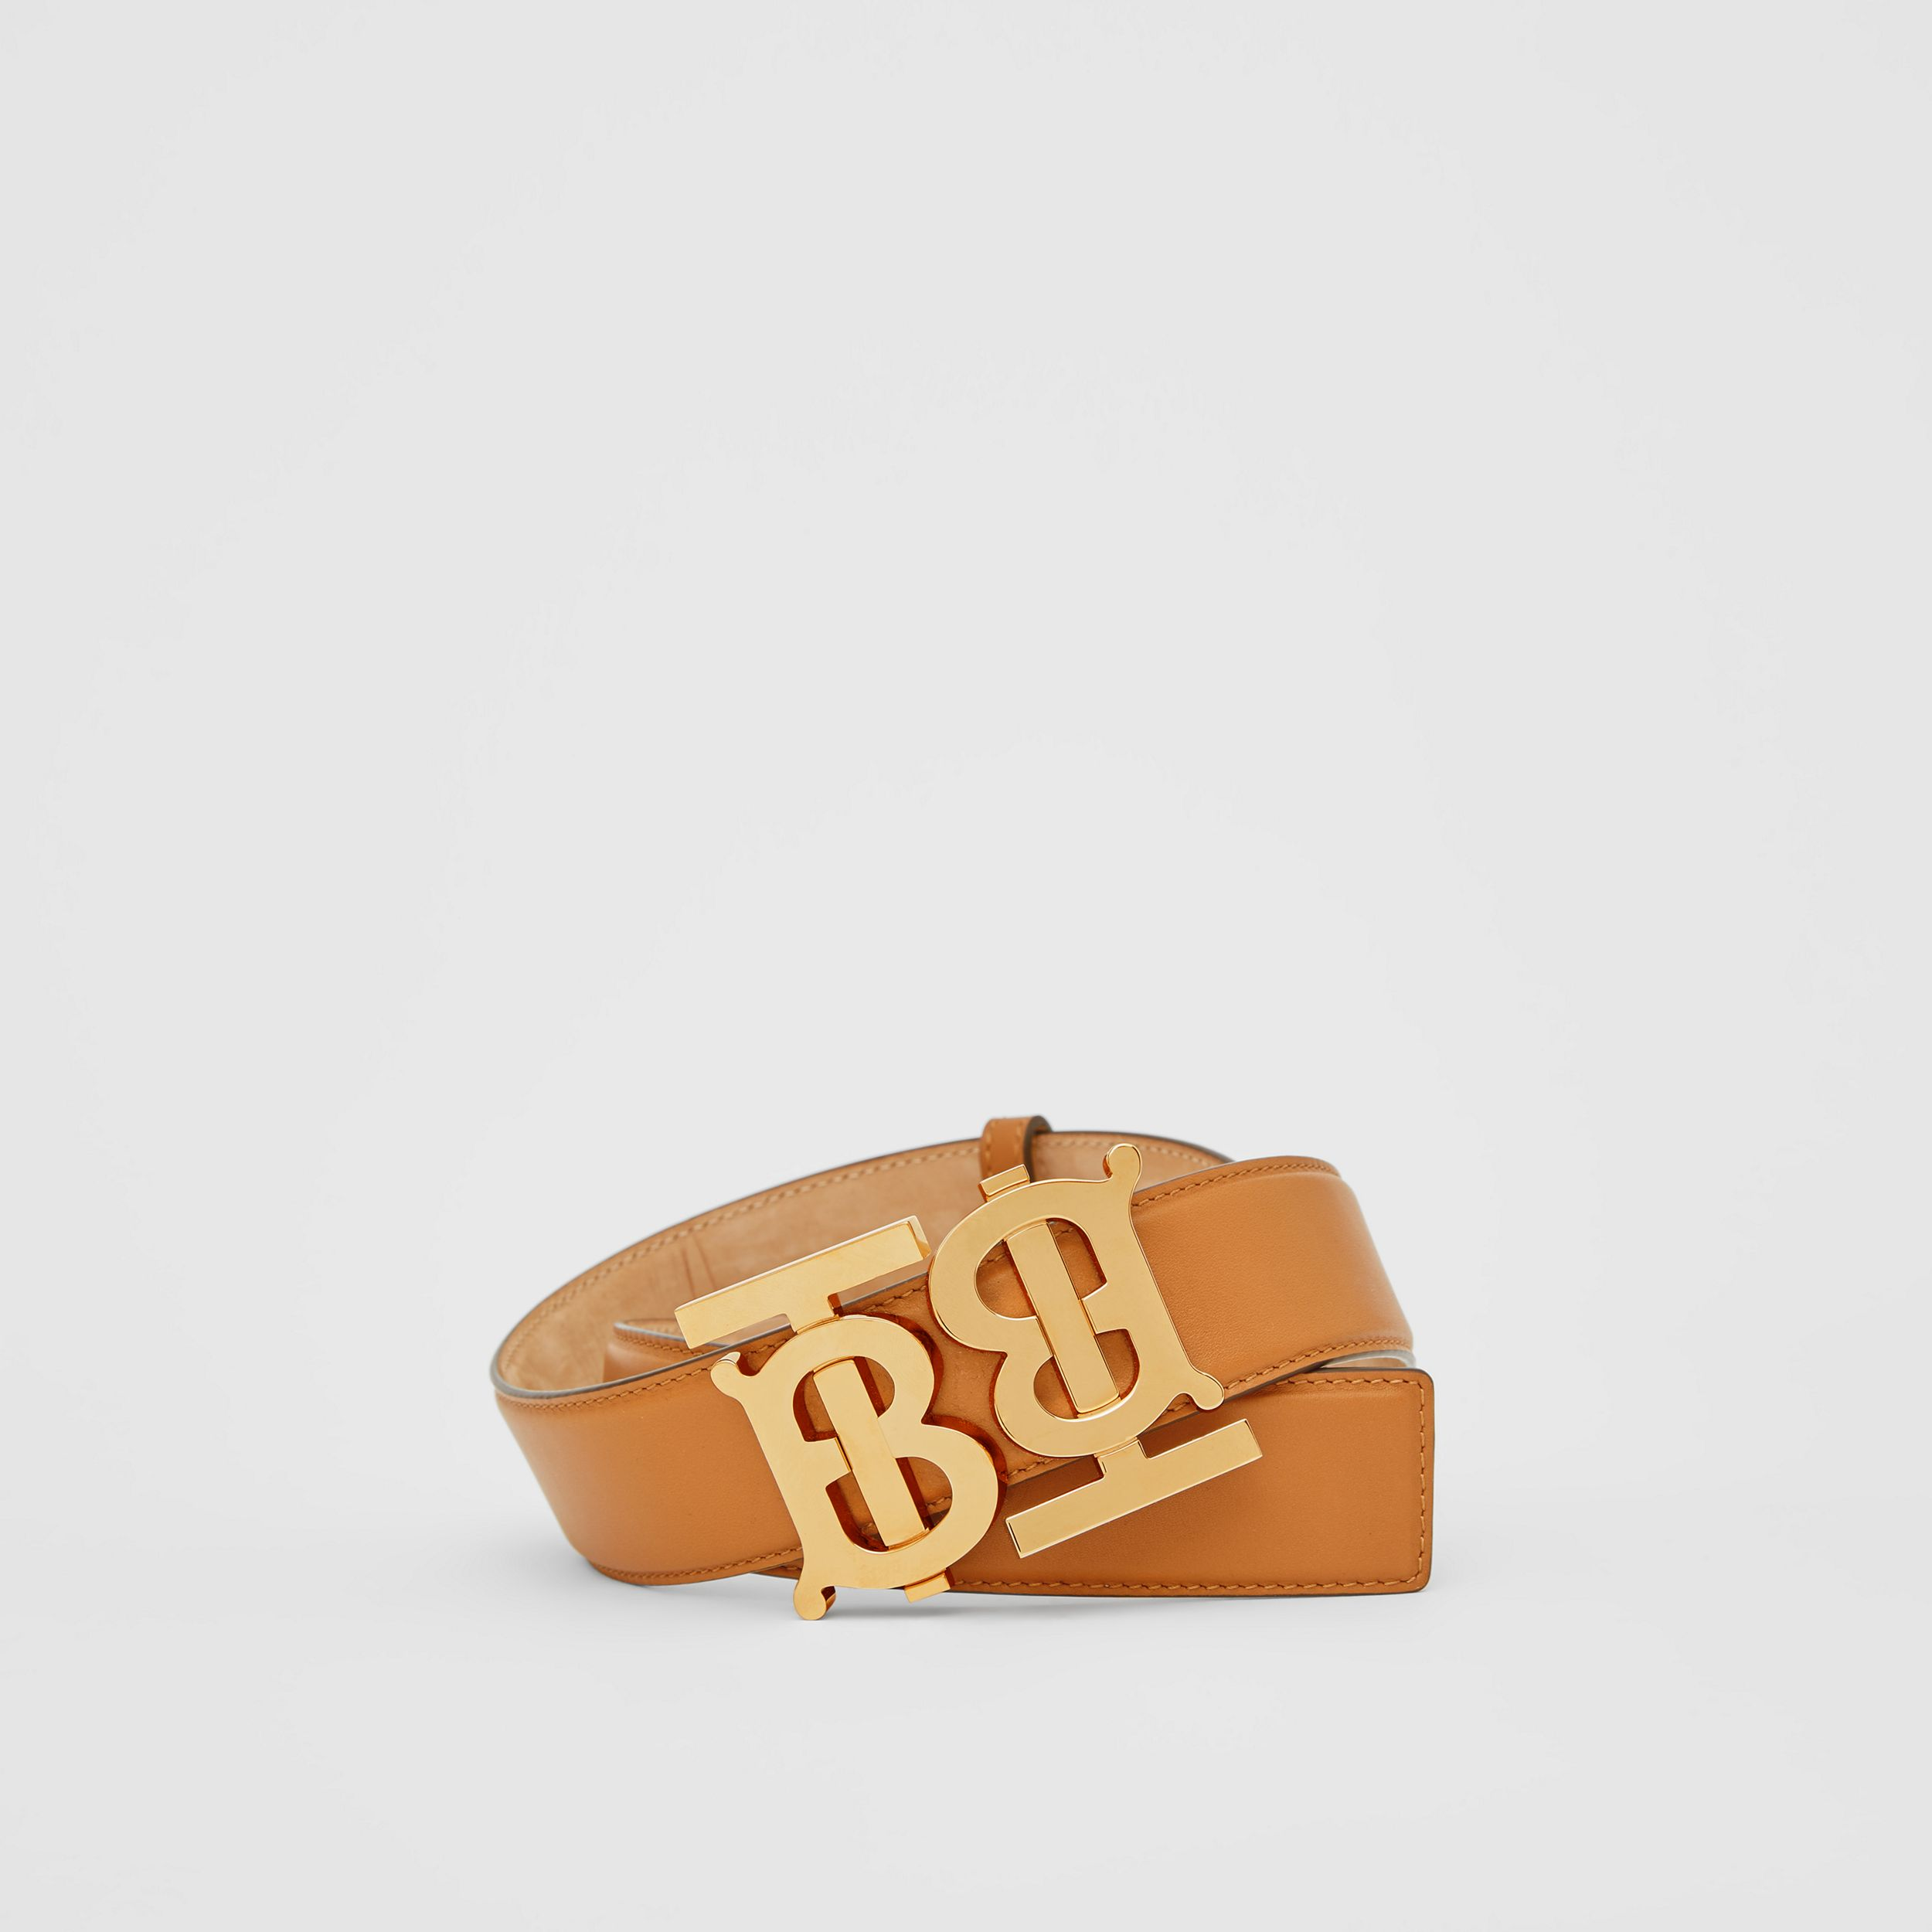 Double Monogram Motif Leather Belt in Warm Tan - Women | Burberry - 1